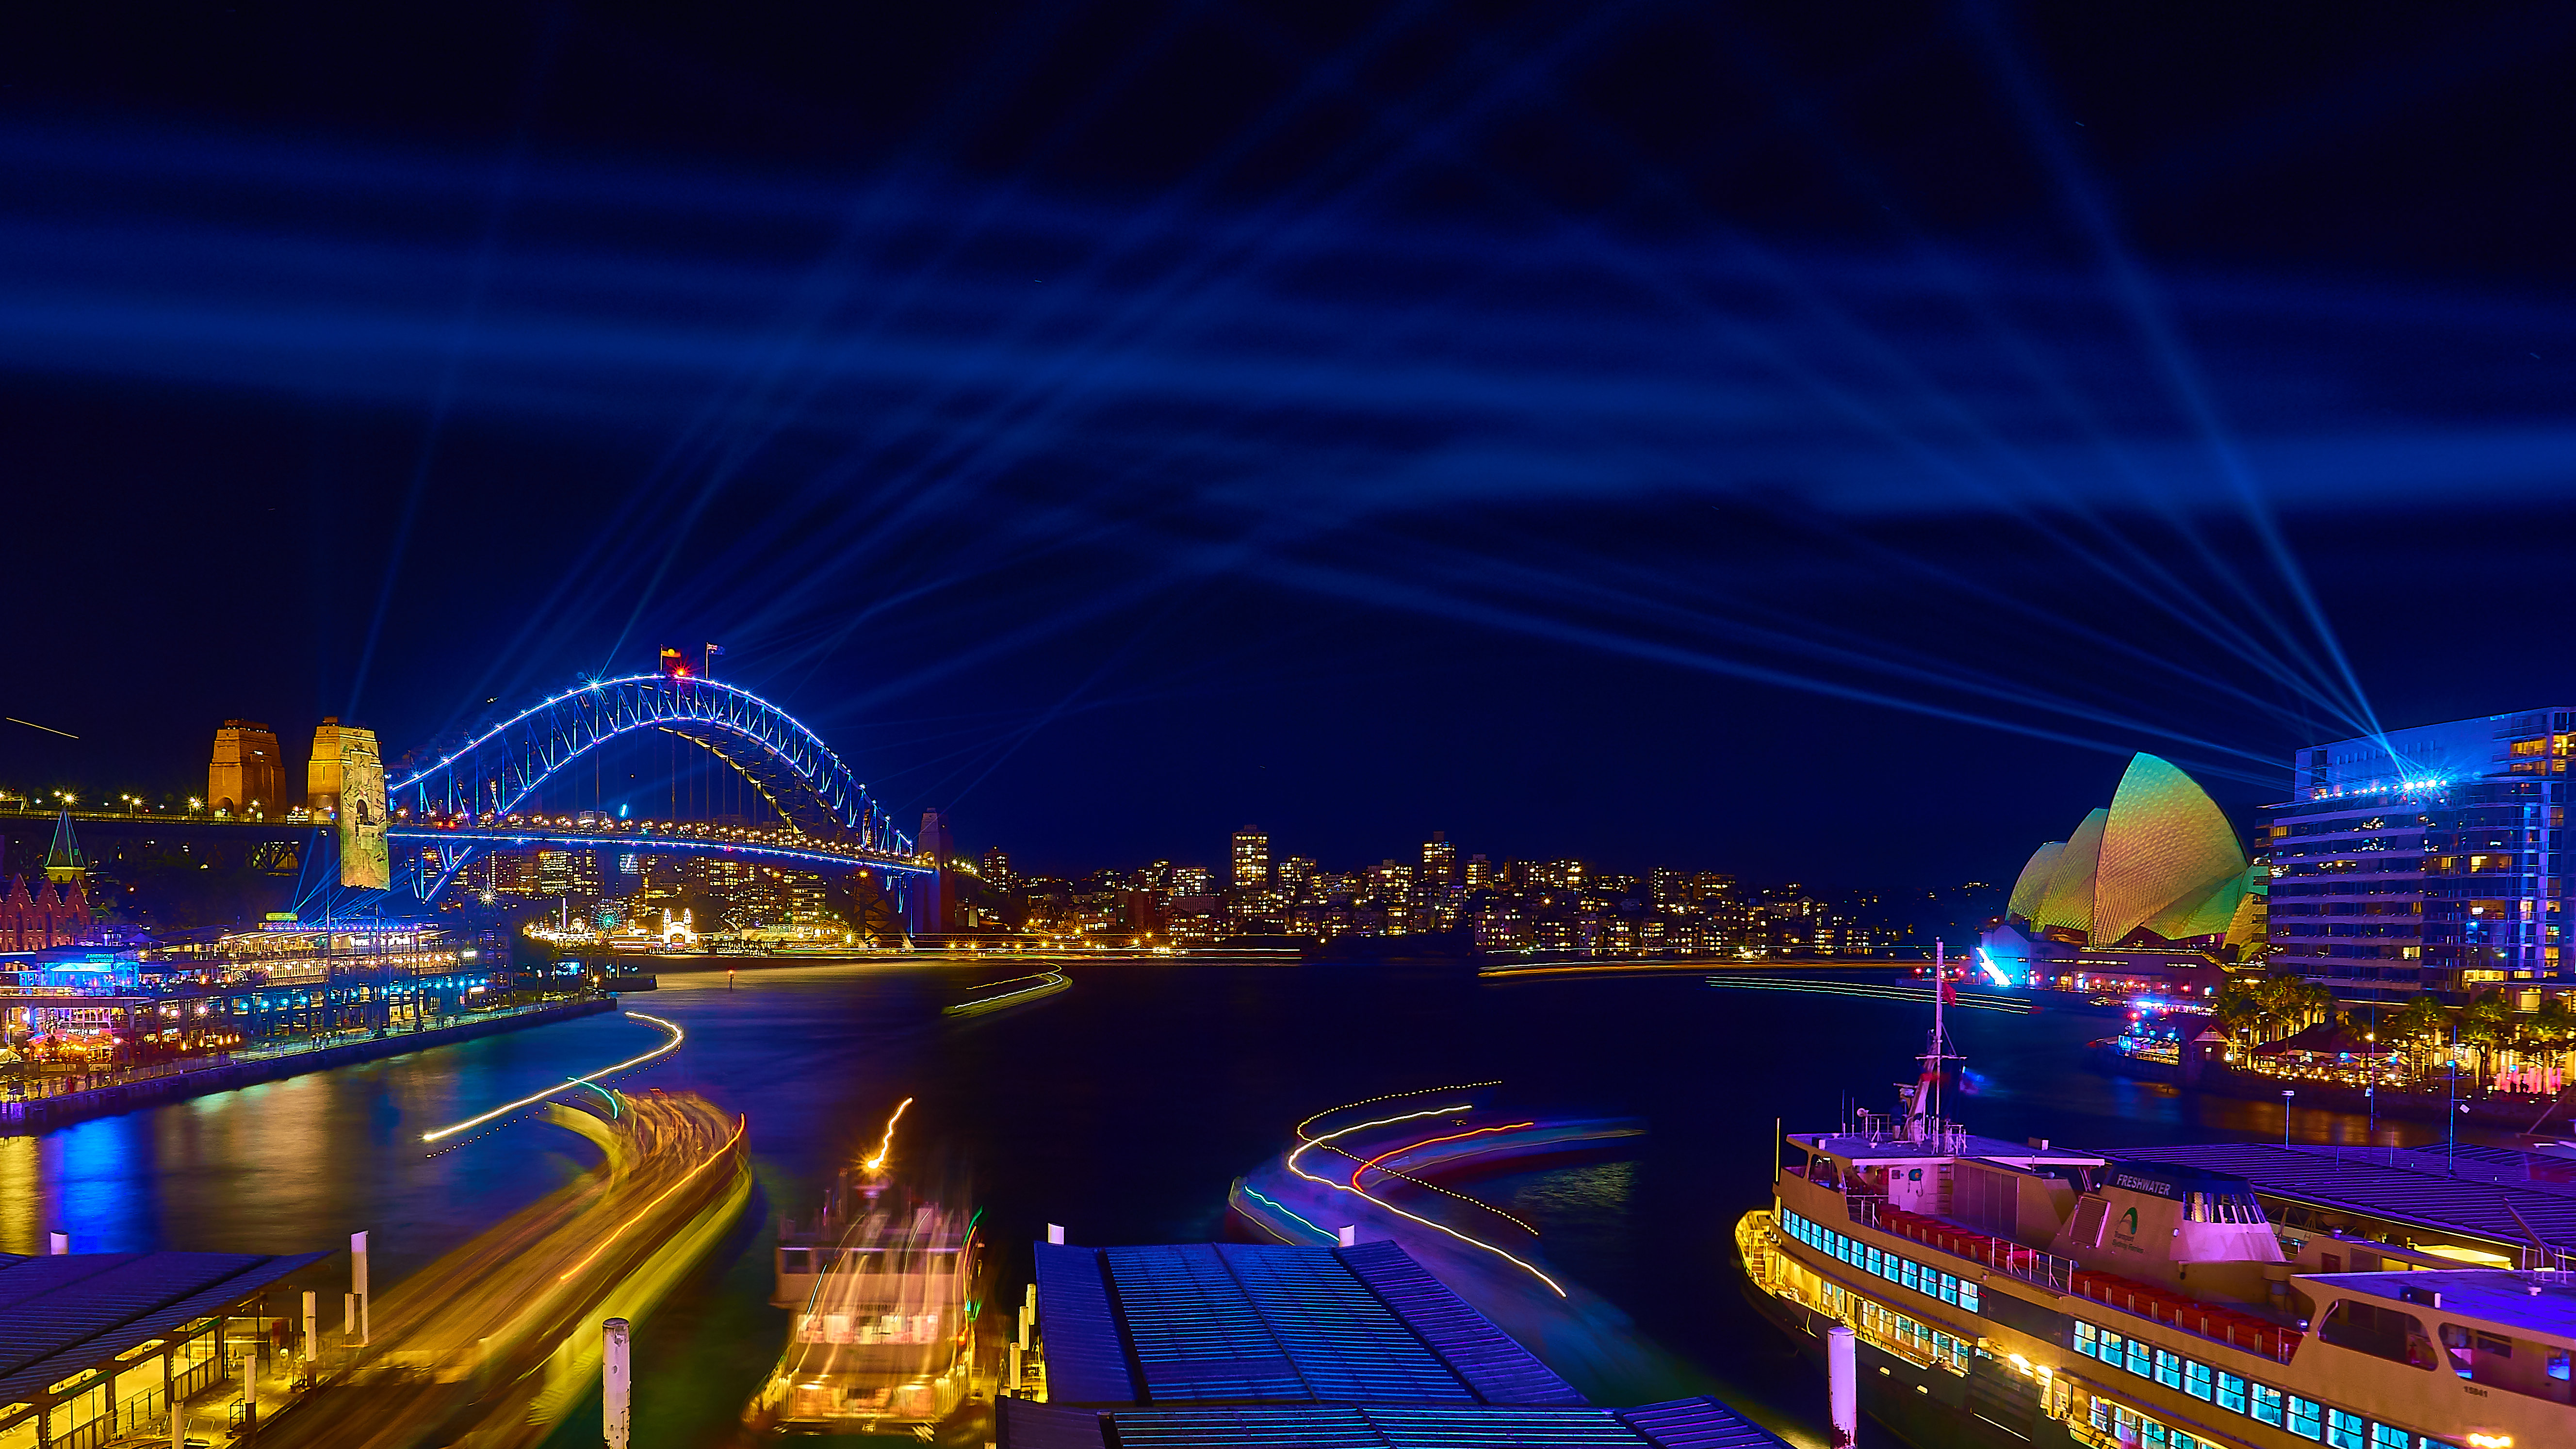 Landscape Photography of Lighted City